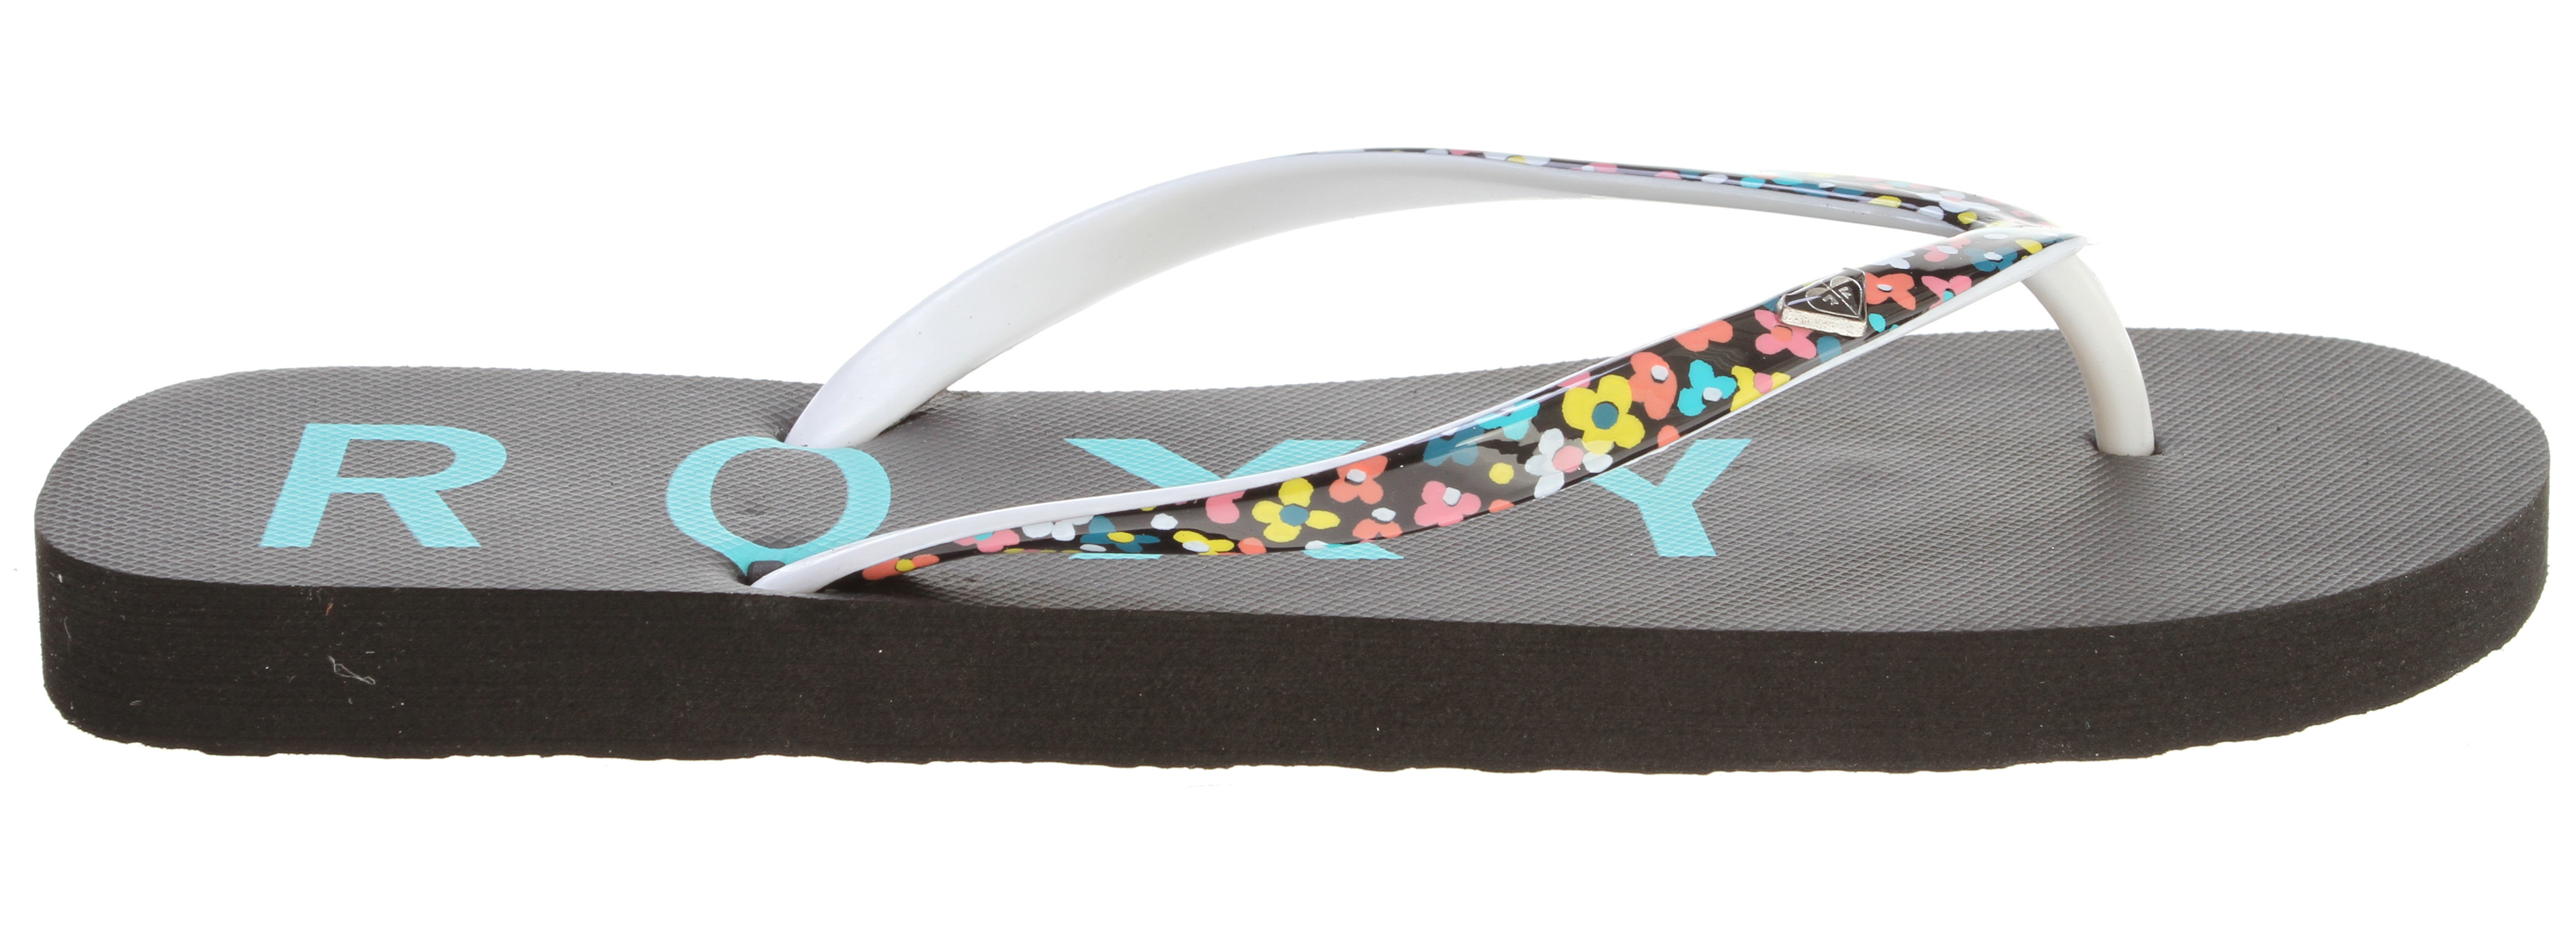 Surf Key Features of the Roxy Mimosa III Sandals: Skinny soft rubber and PVC printed upper with painted heart logo Squishy rubber insole with graphic Rubber outsole - $12.95